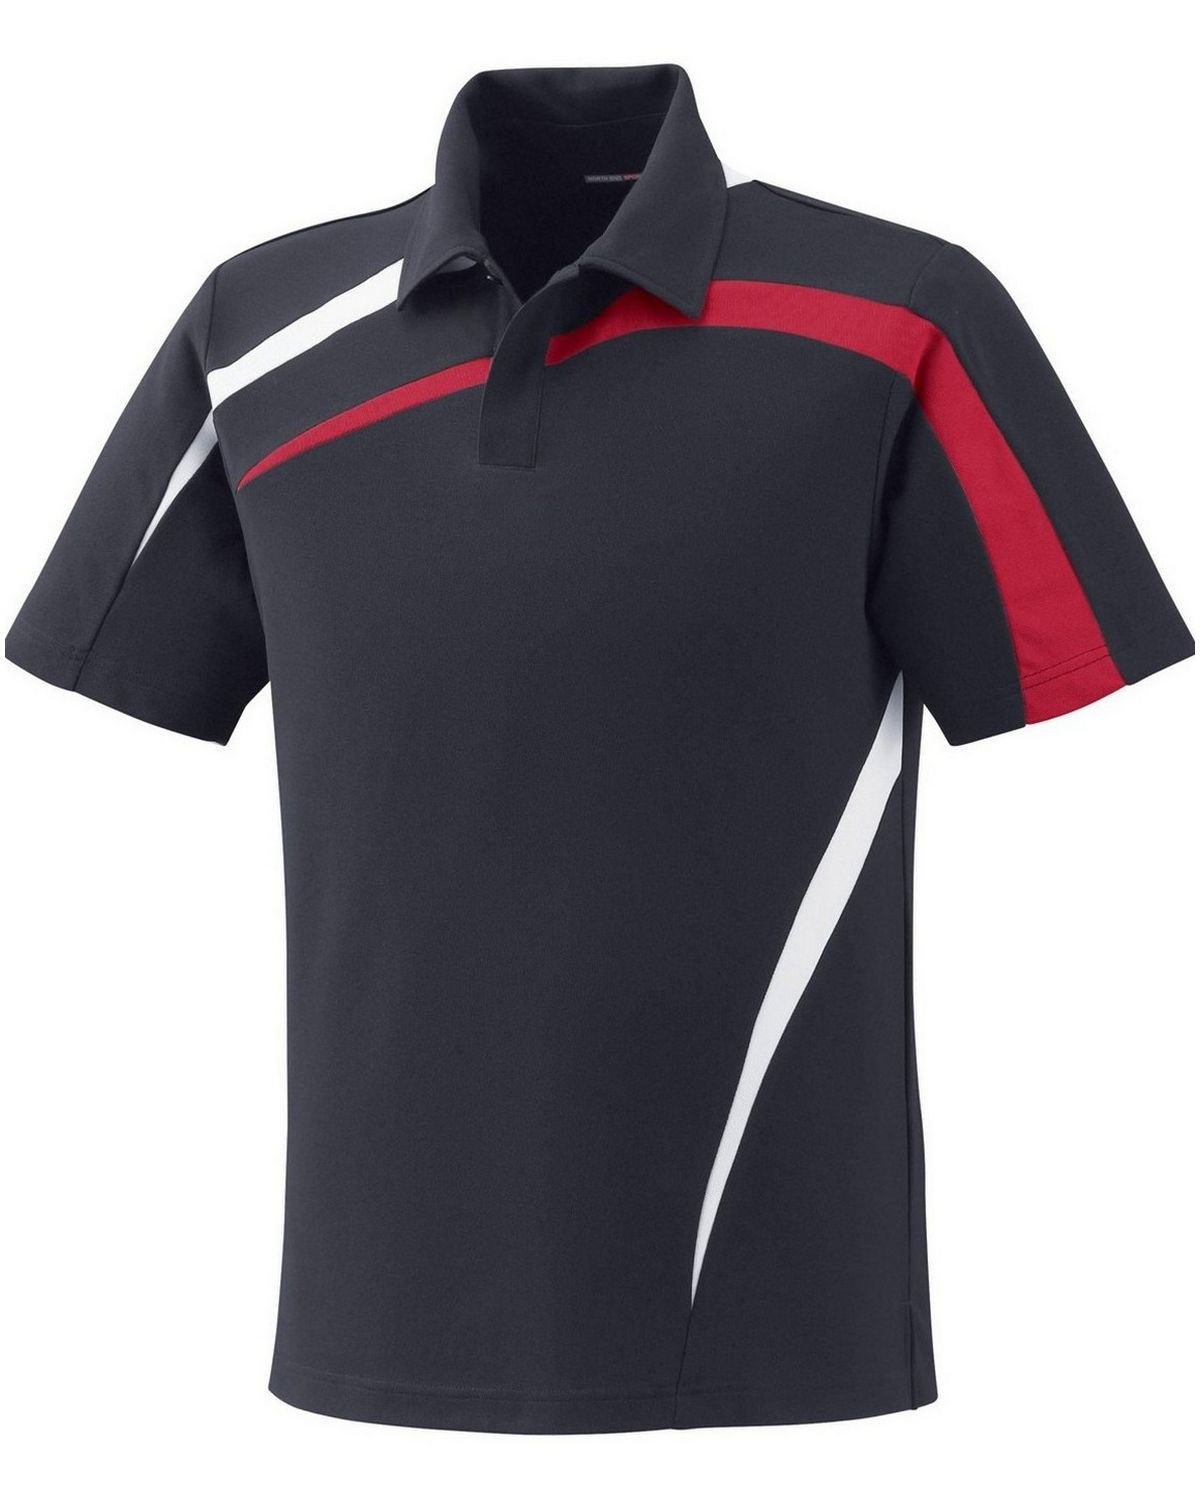 North End 88645 Men's Impact Performance Polyester Pique Colorblock Polo - Black Silk - S #silk